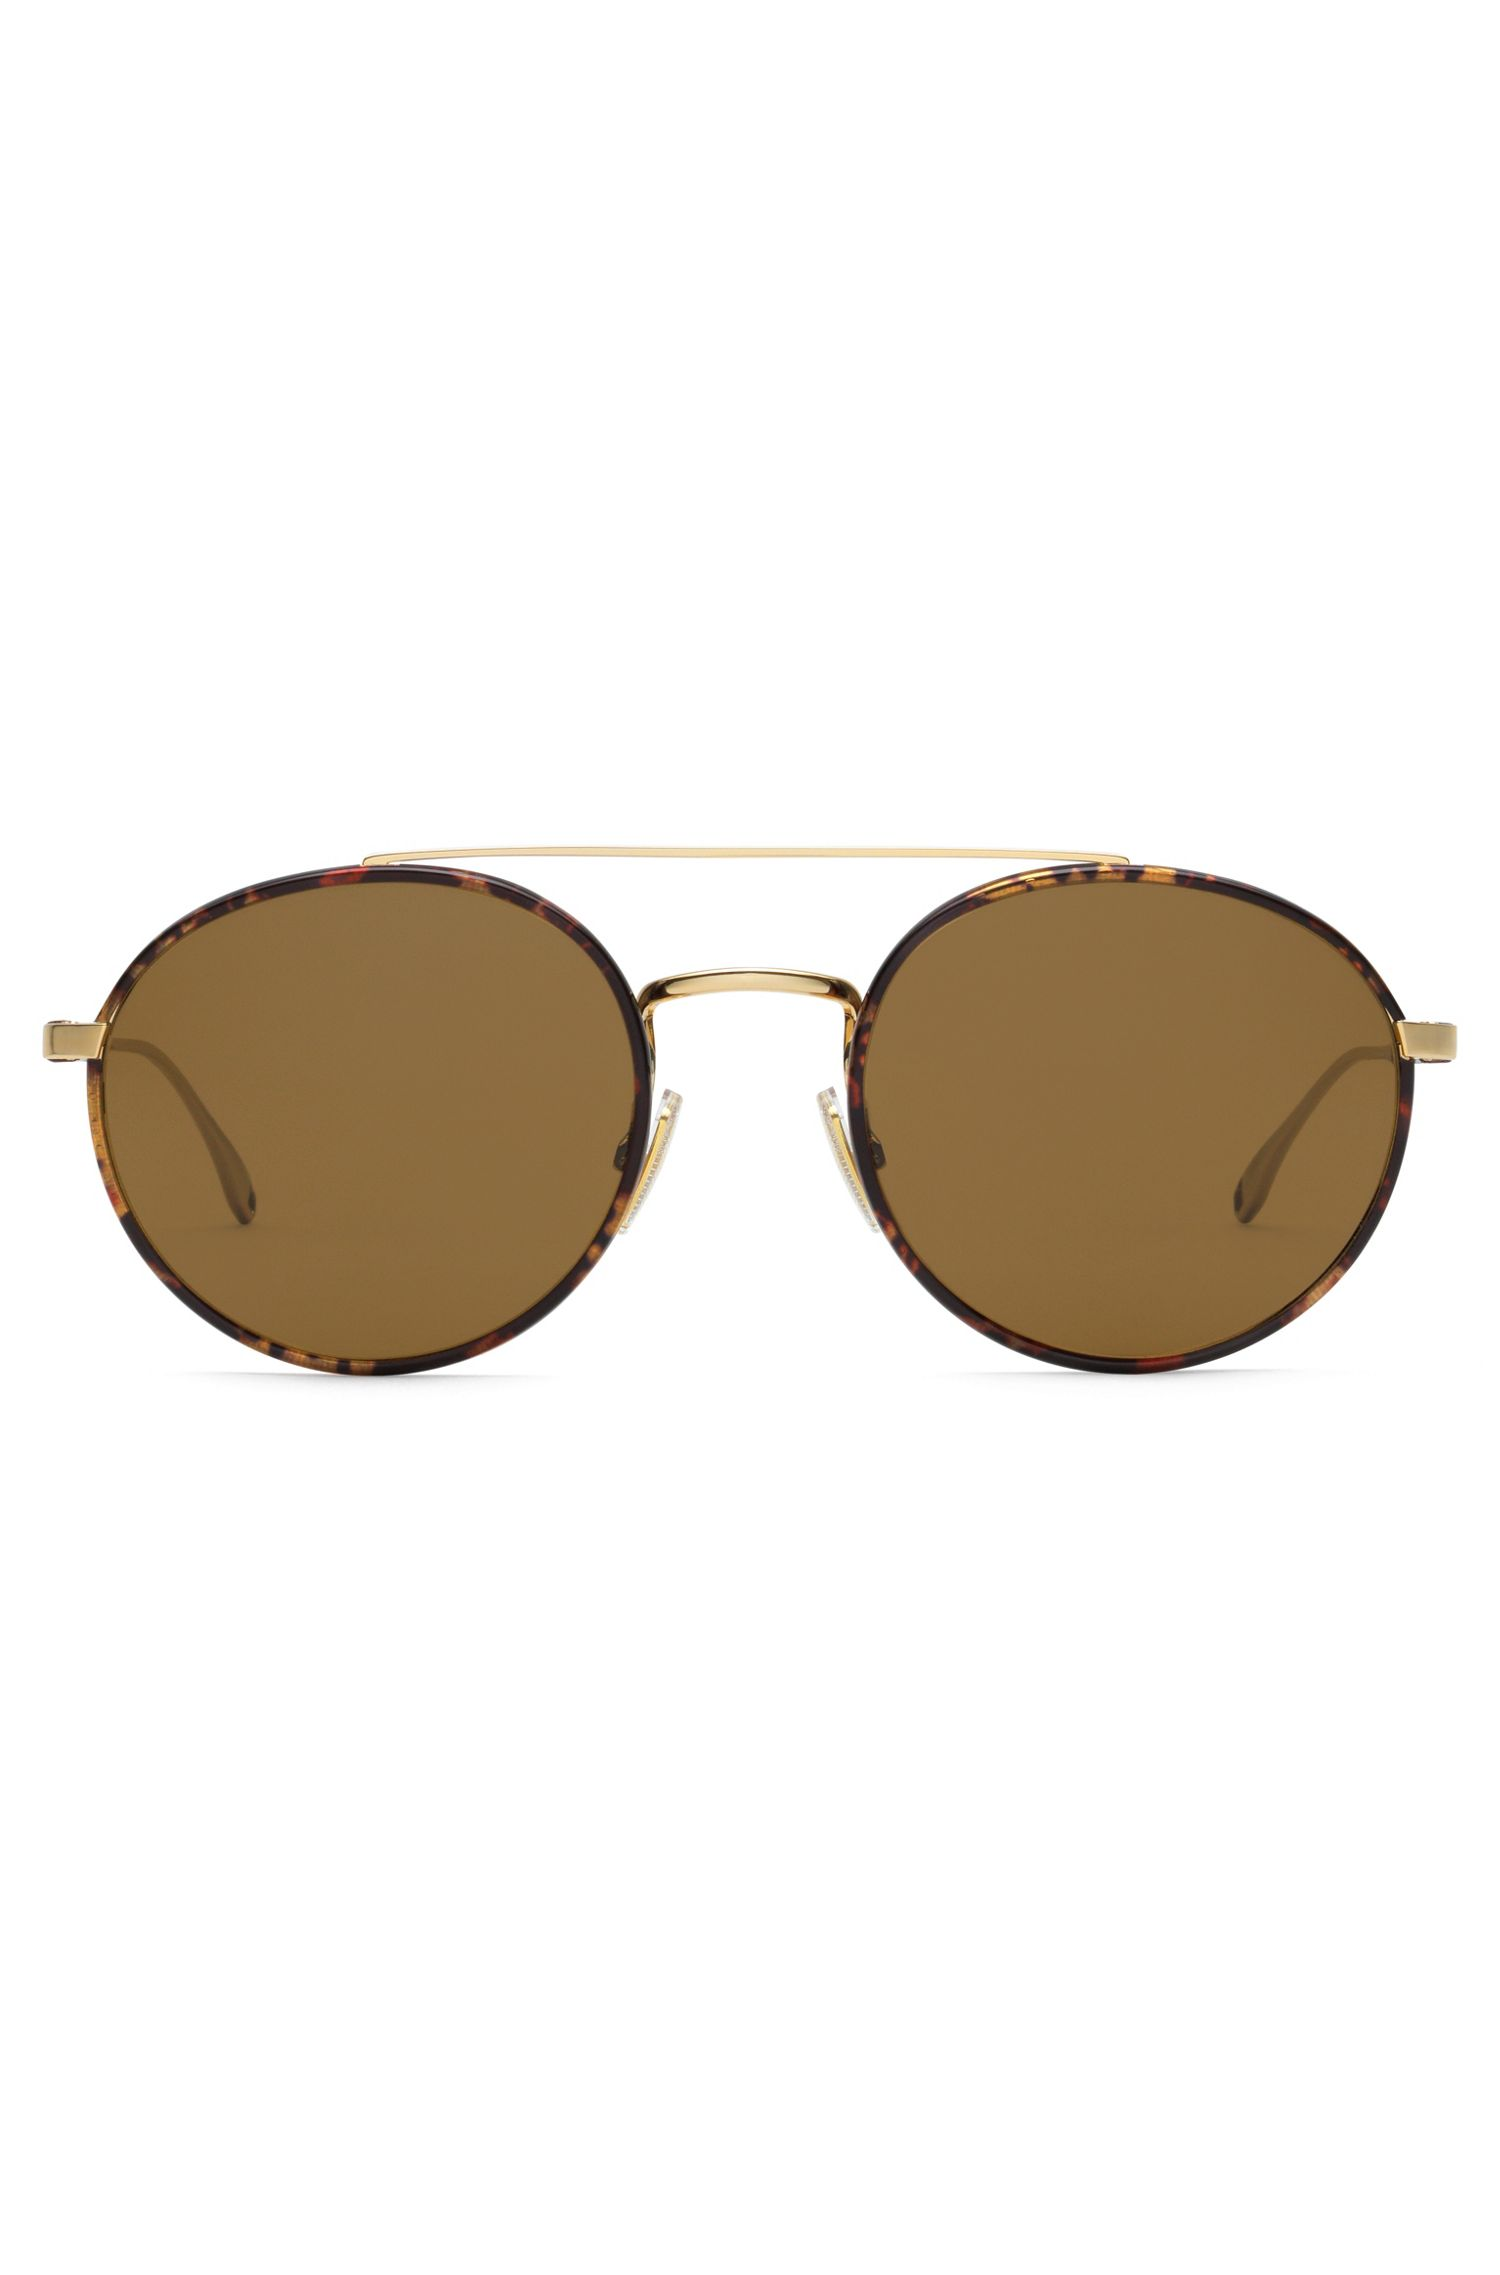 Brown Lens Round Leather Wrapped Sunglasses | BOSS 0886S